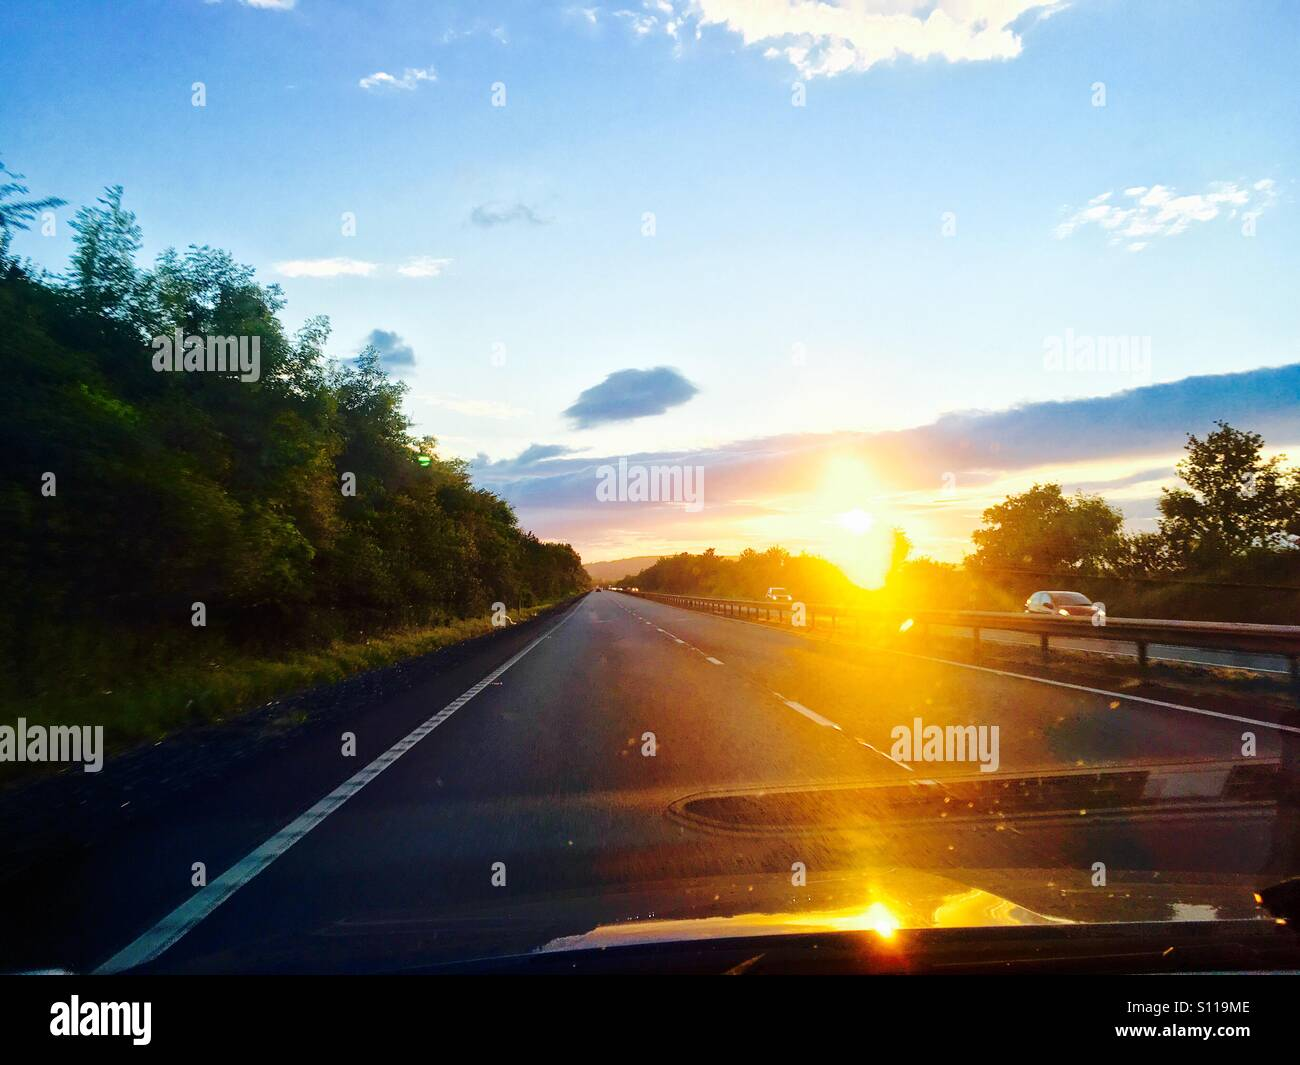 The summer open road - Stock Image